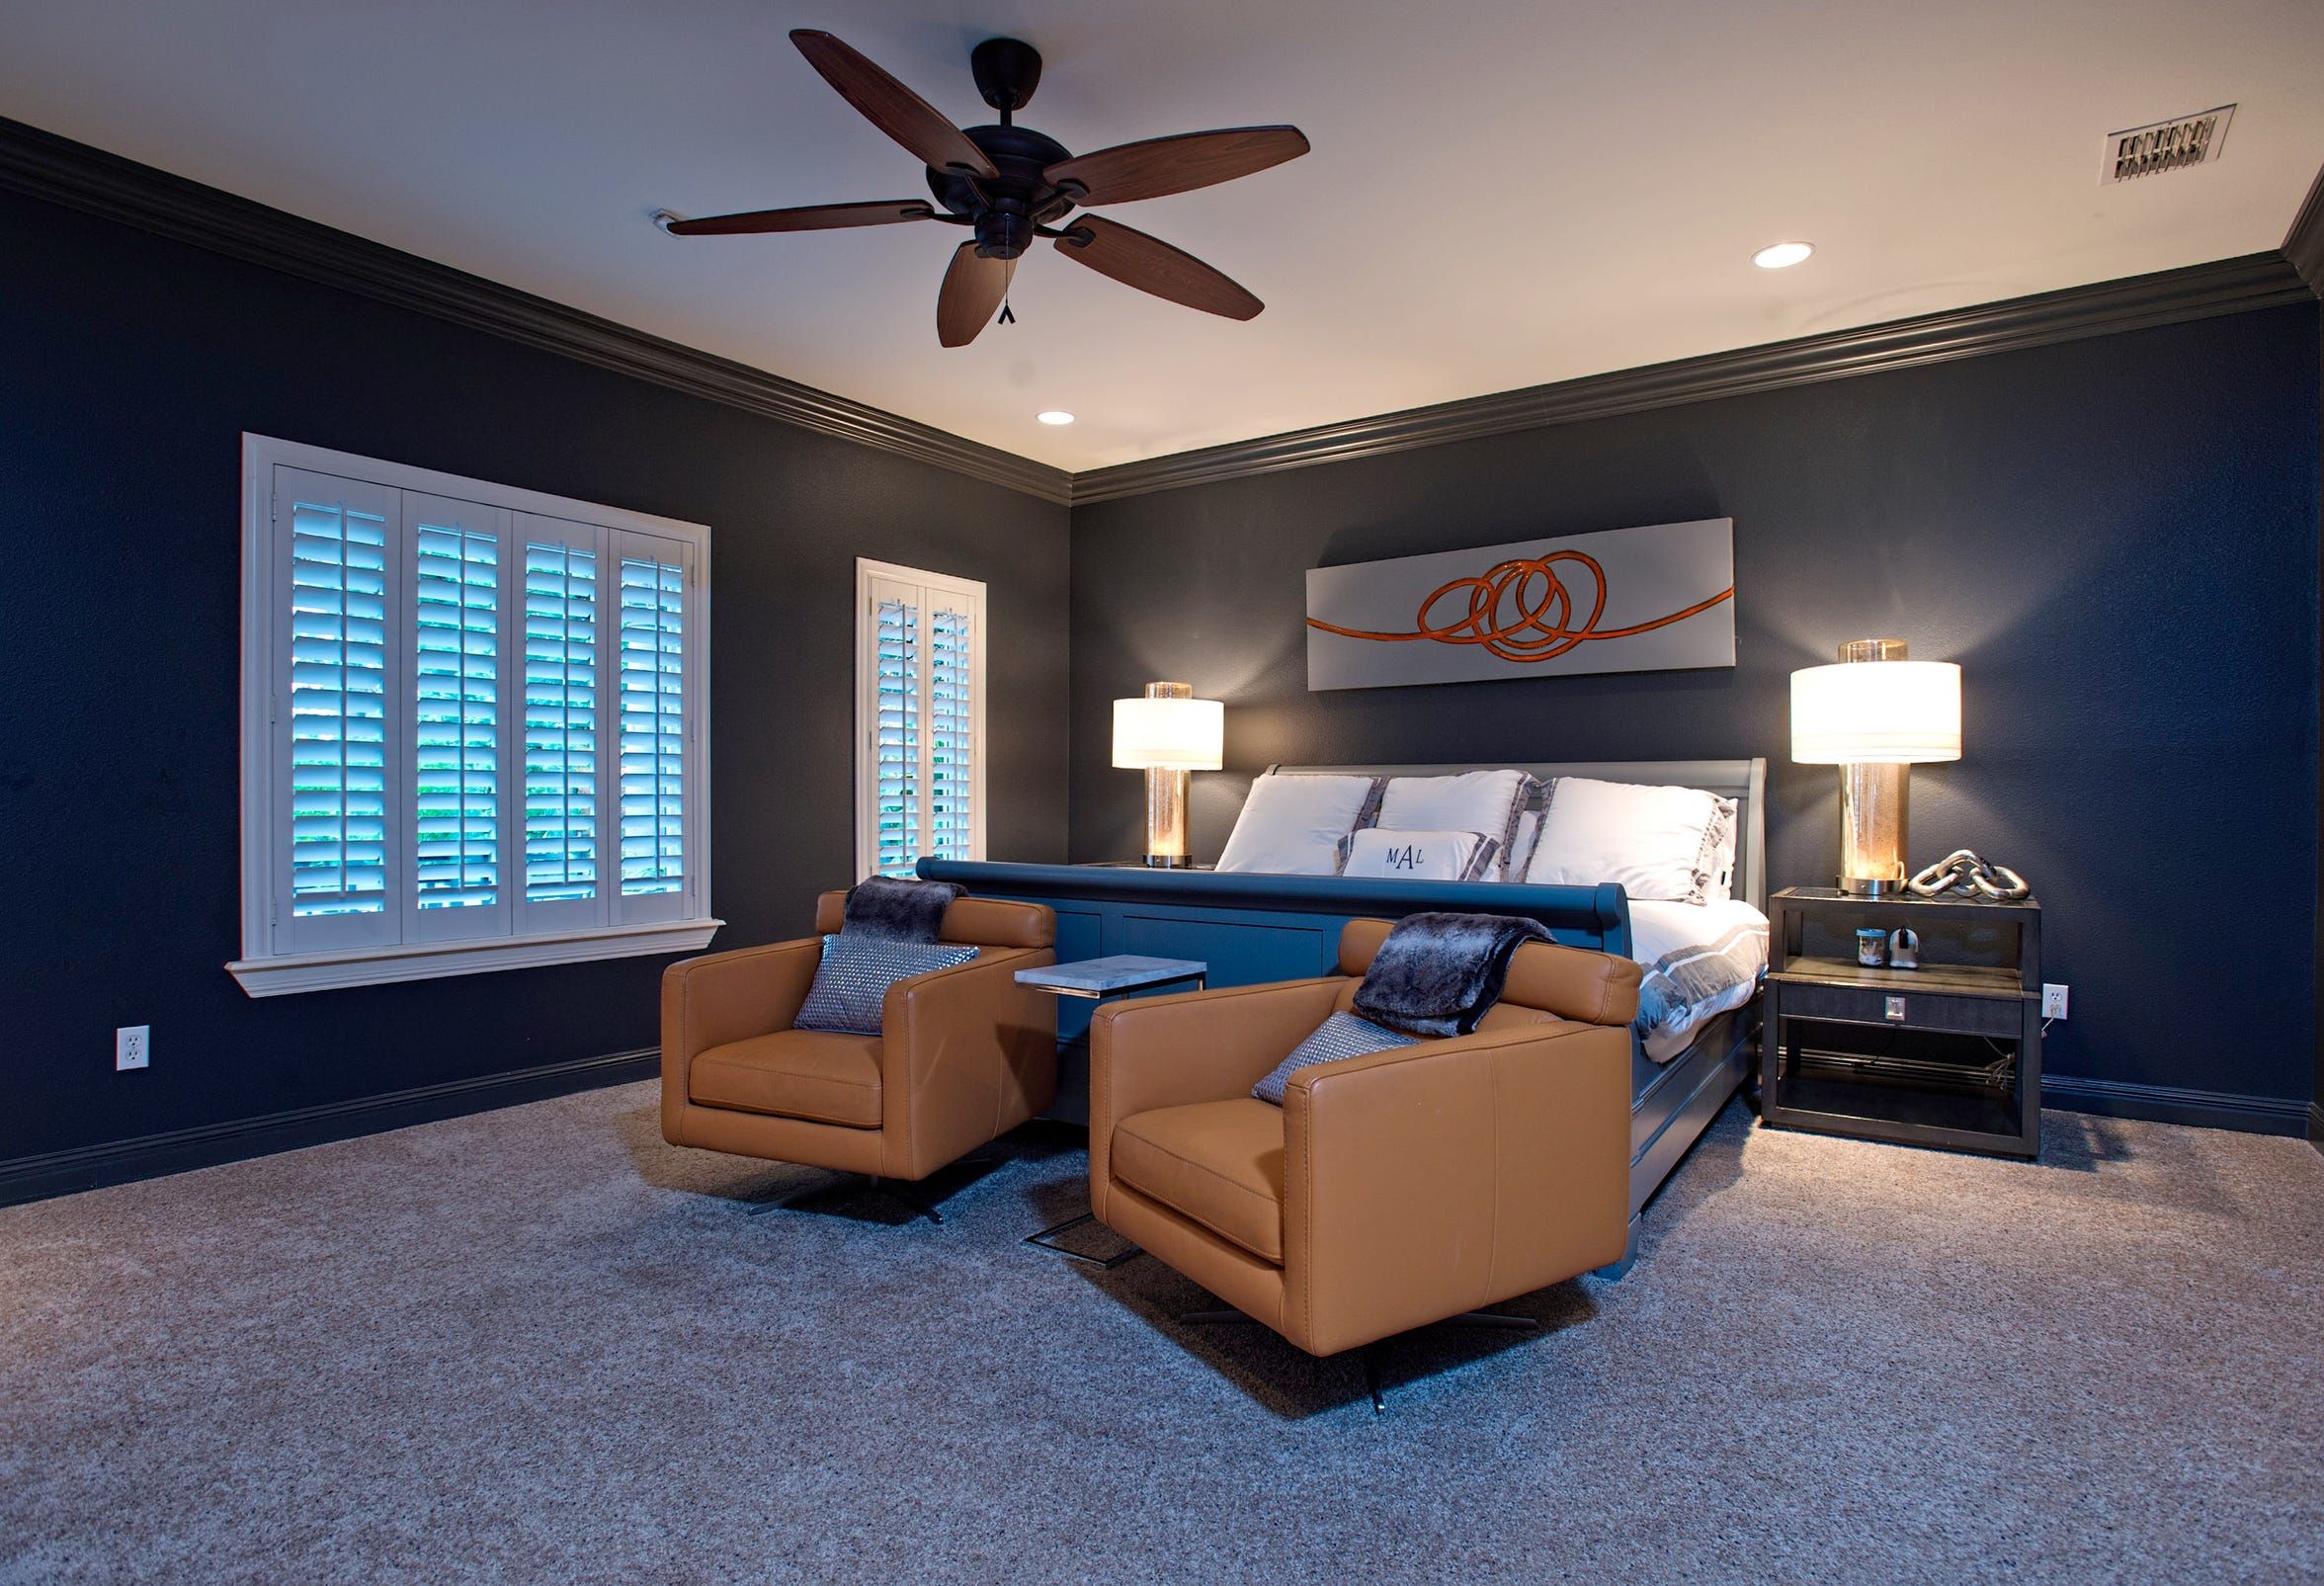 The large master bedroom features plantation shuttered windows,  dark walls and a white ceiling, very relaxing